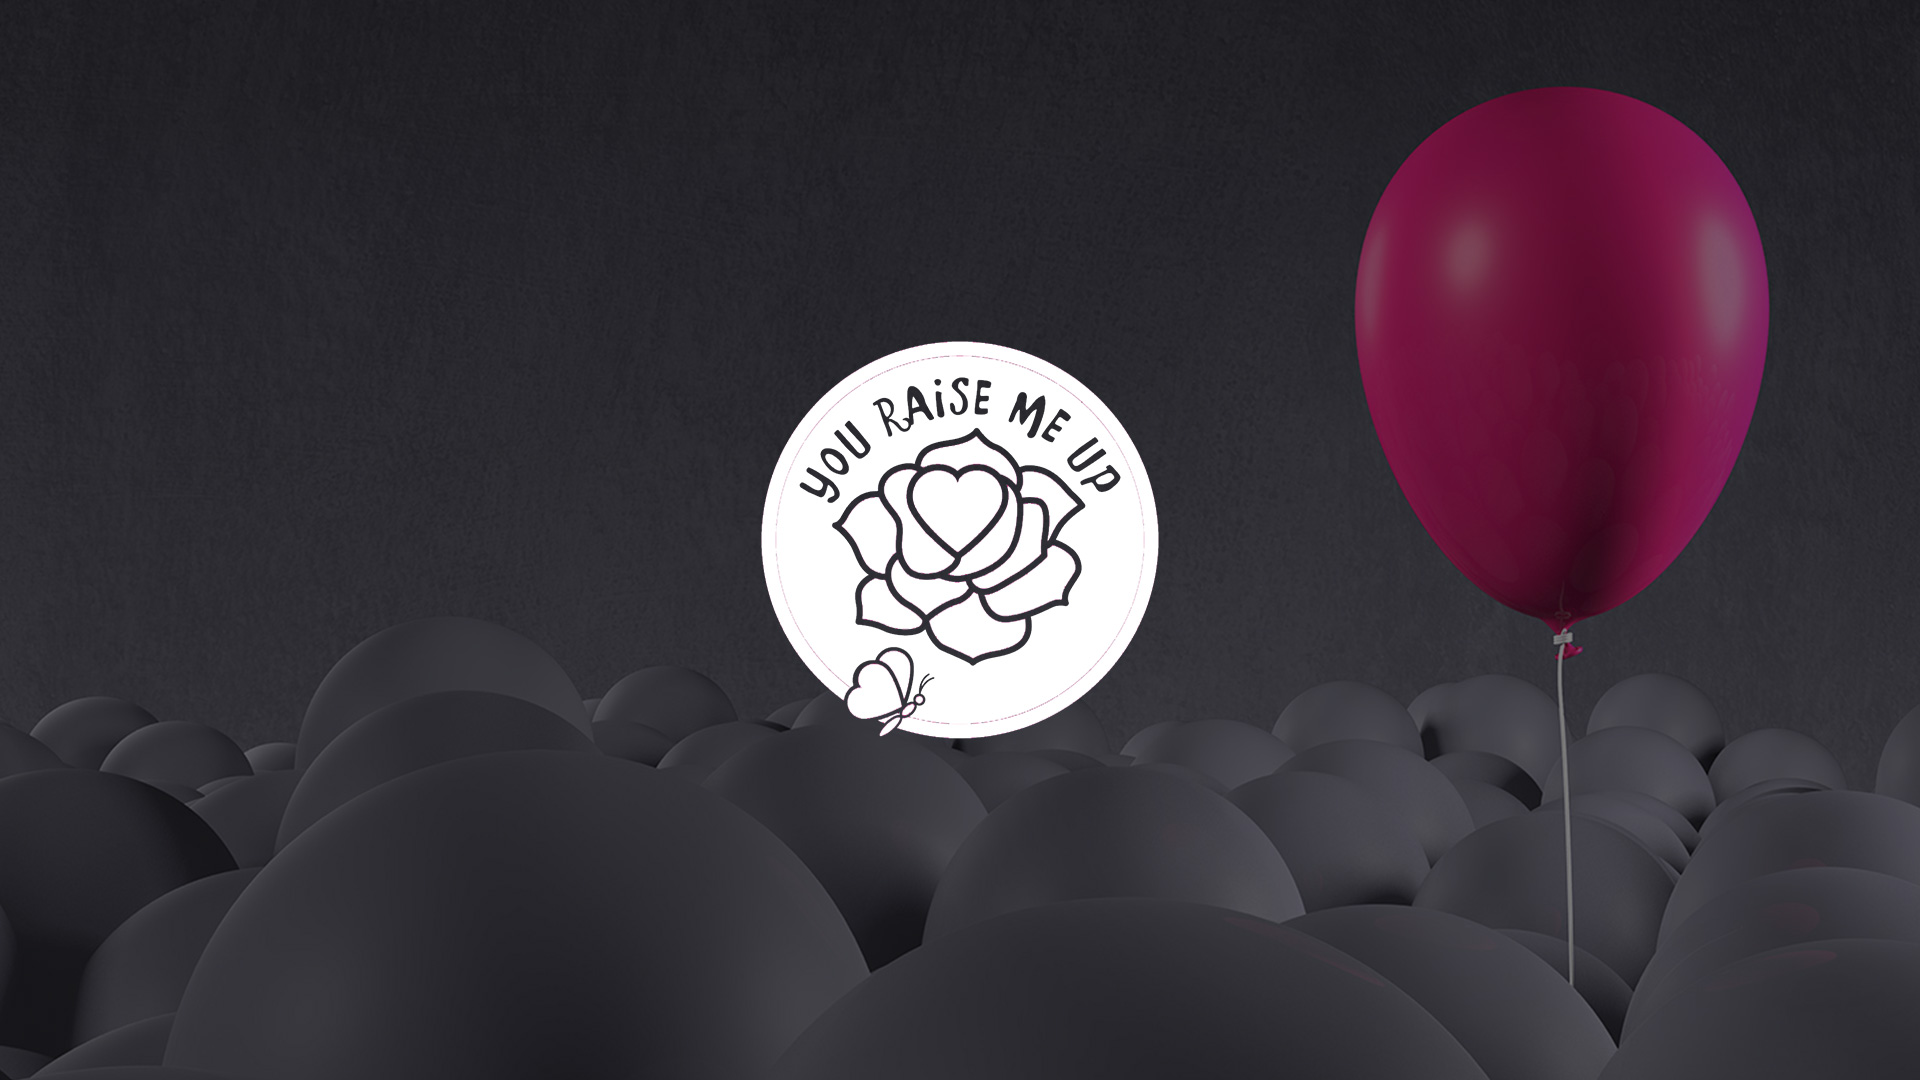 Graphic of a Pink Balloon Amongst Grey Balloons